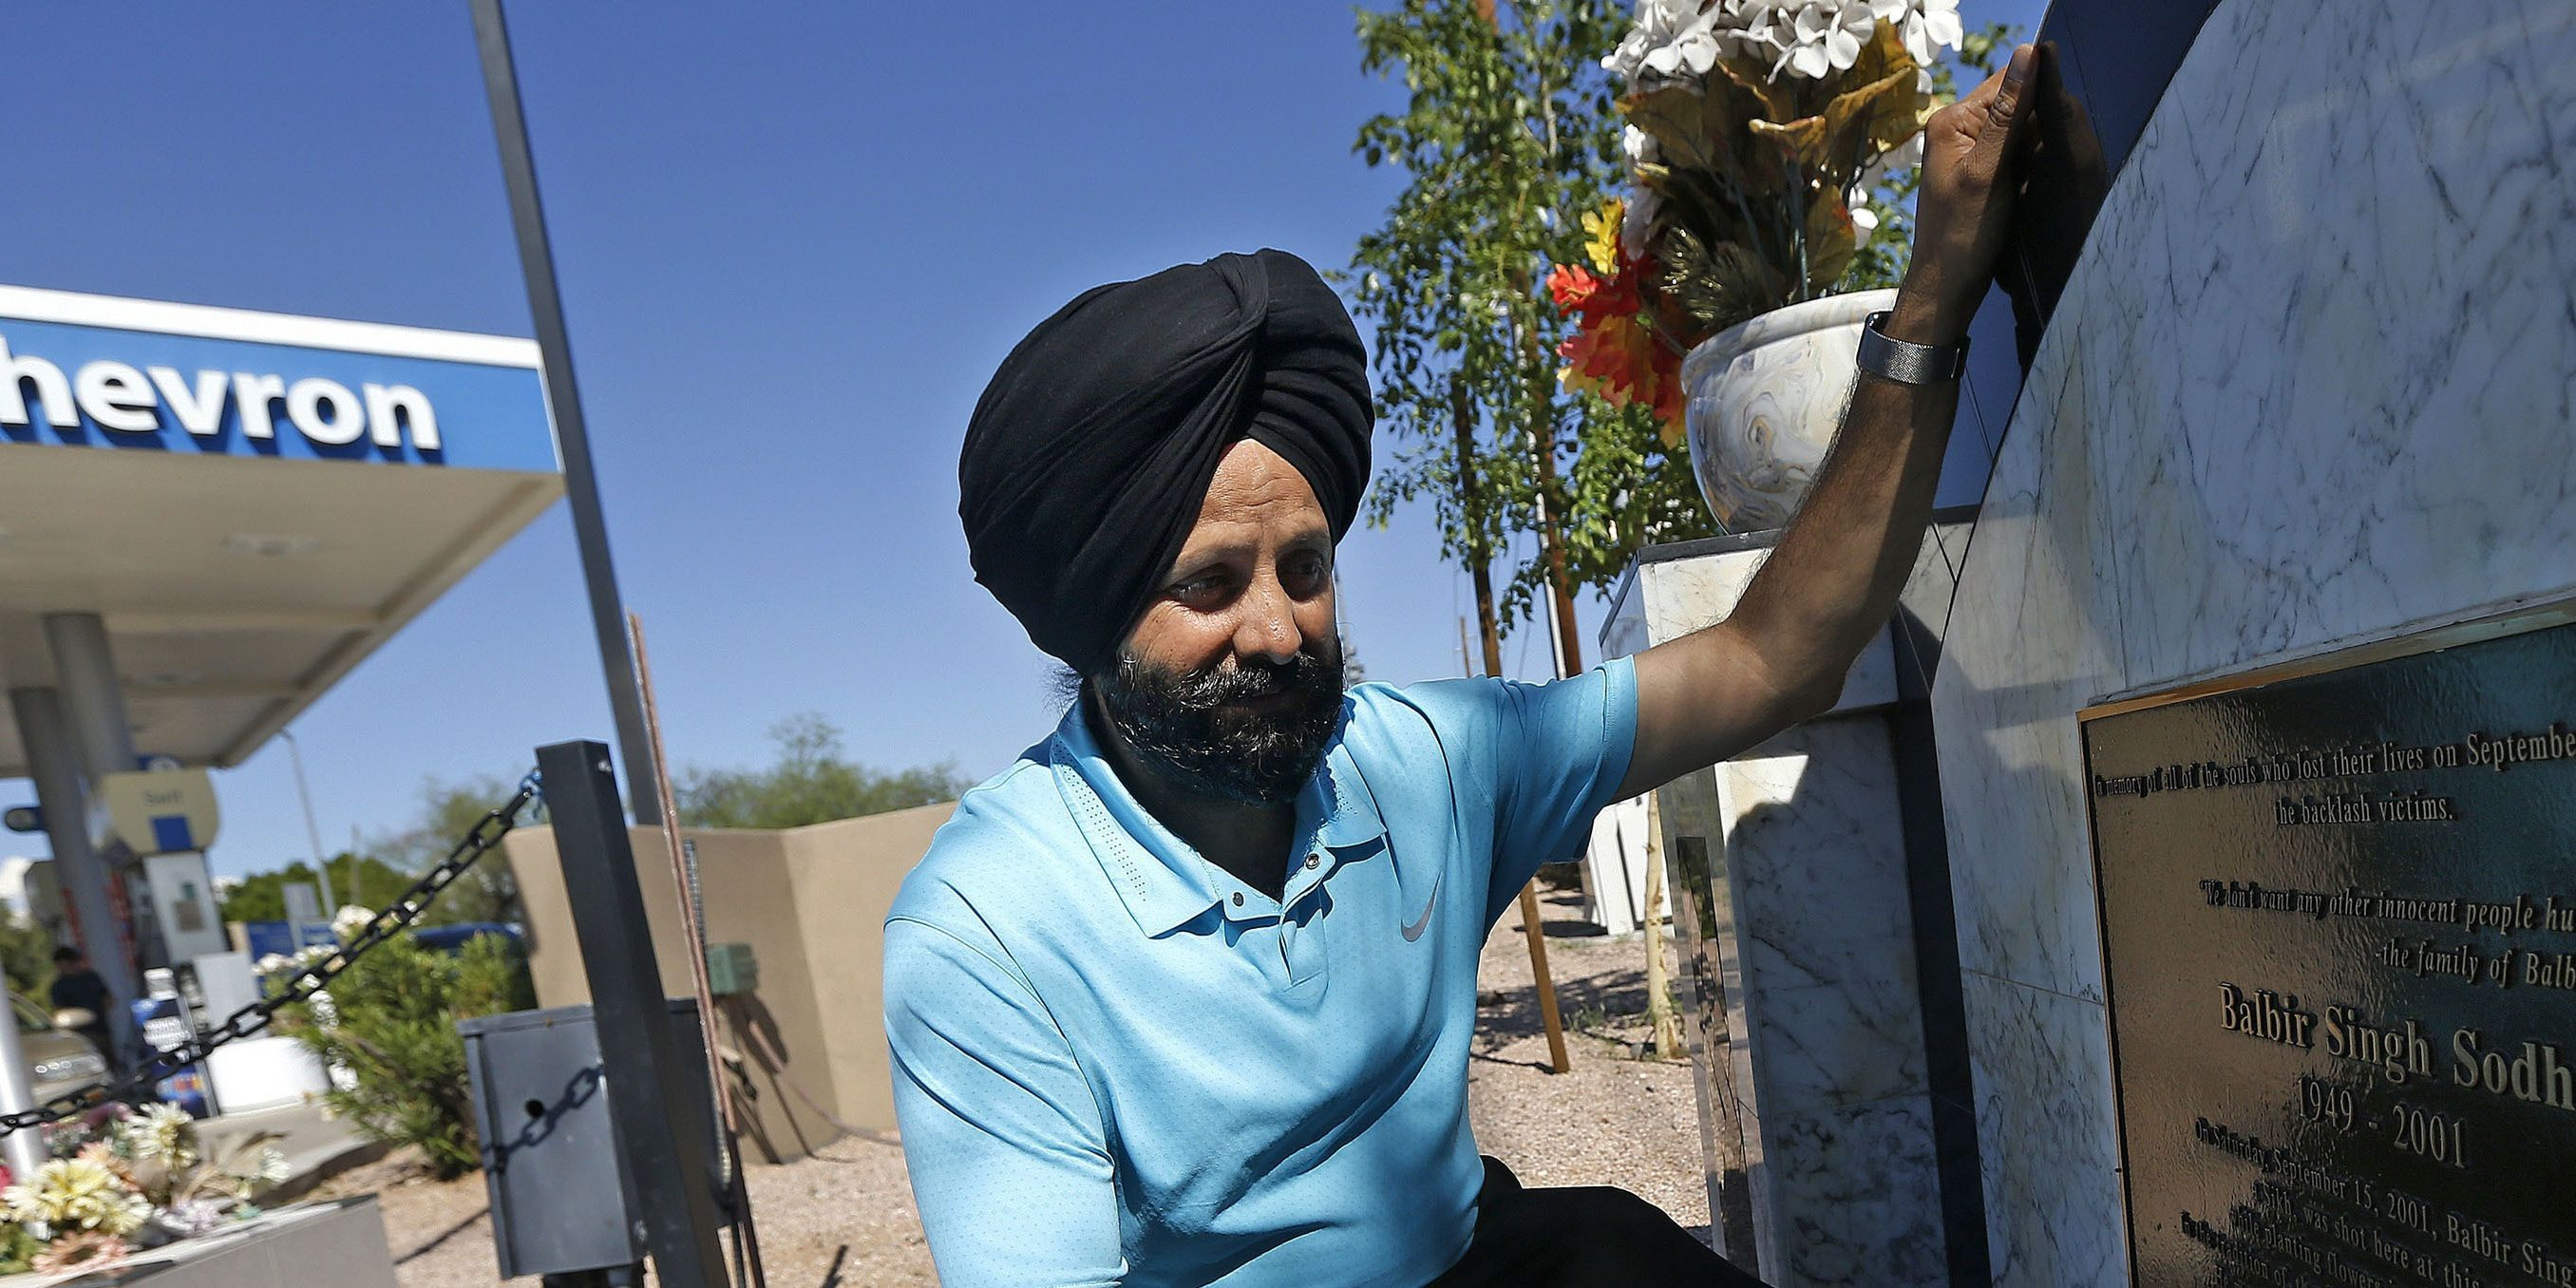 Sikh preaches love 18 years after brother killed over turban following 9/11